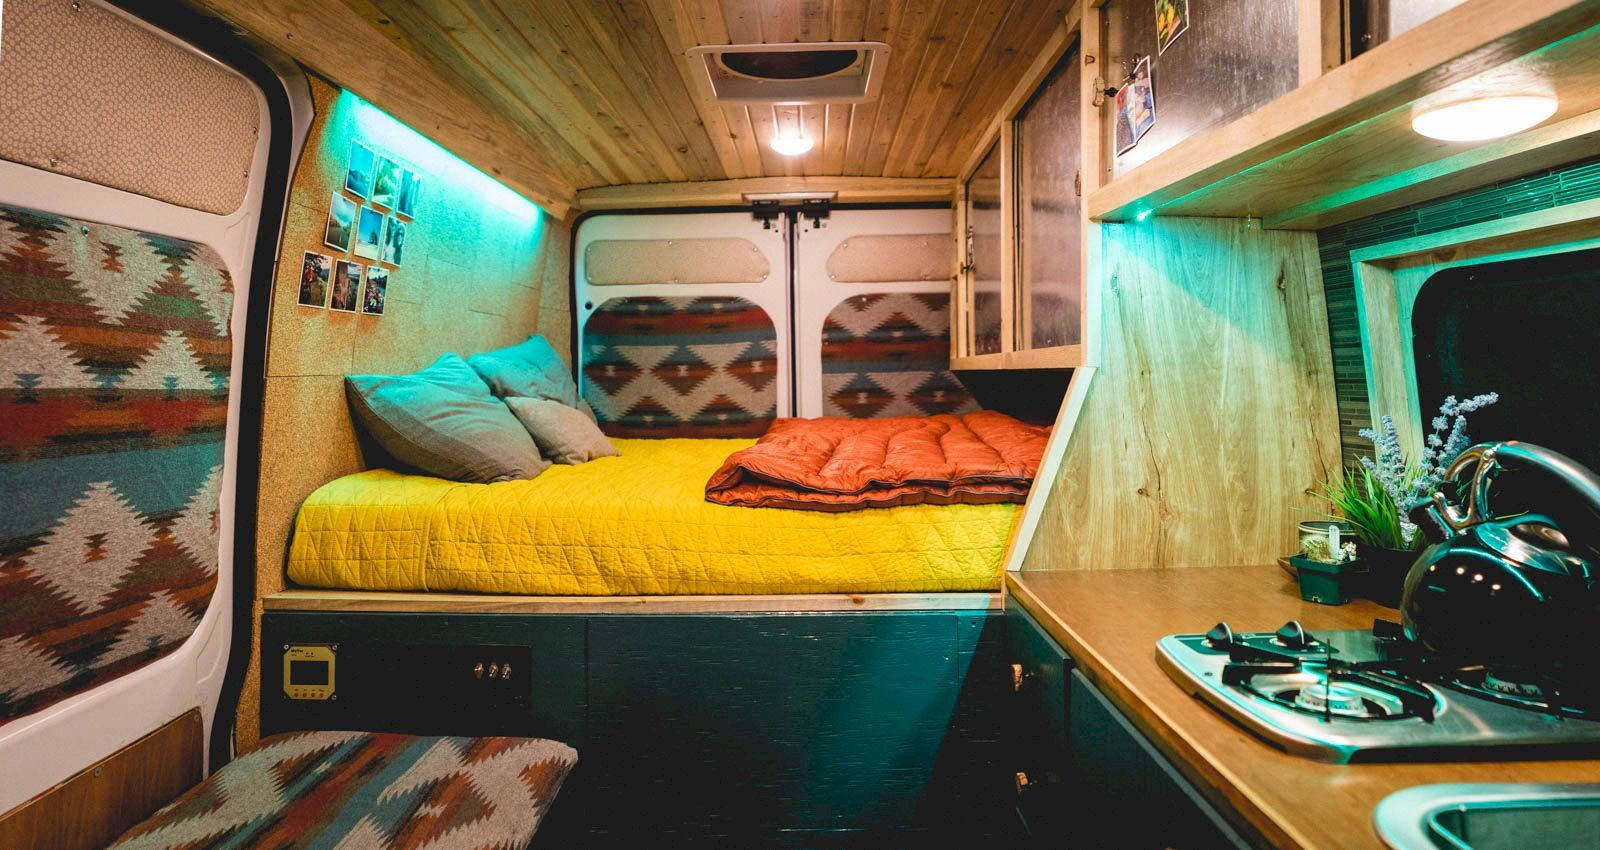 123 Awesome Camper Van Interior Ideas Thatll Inspire You To Hit The Road